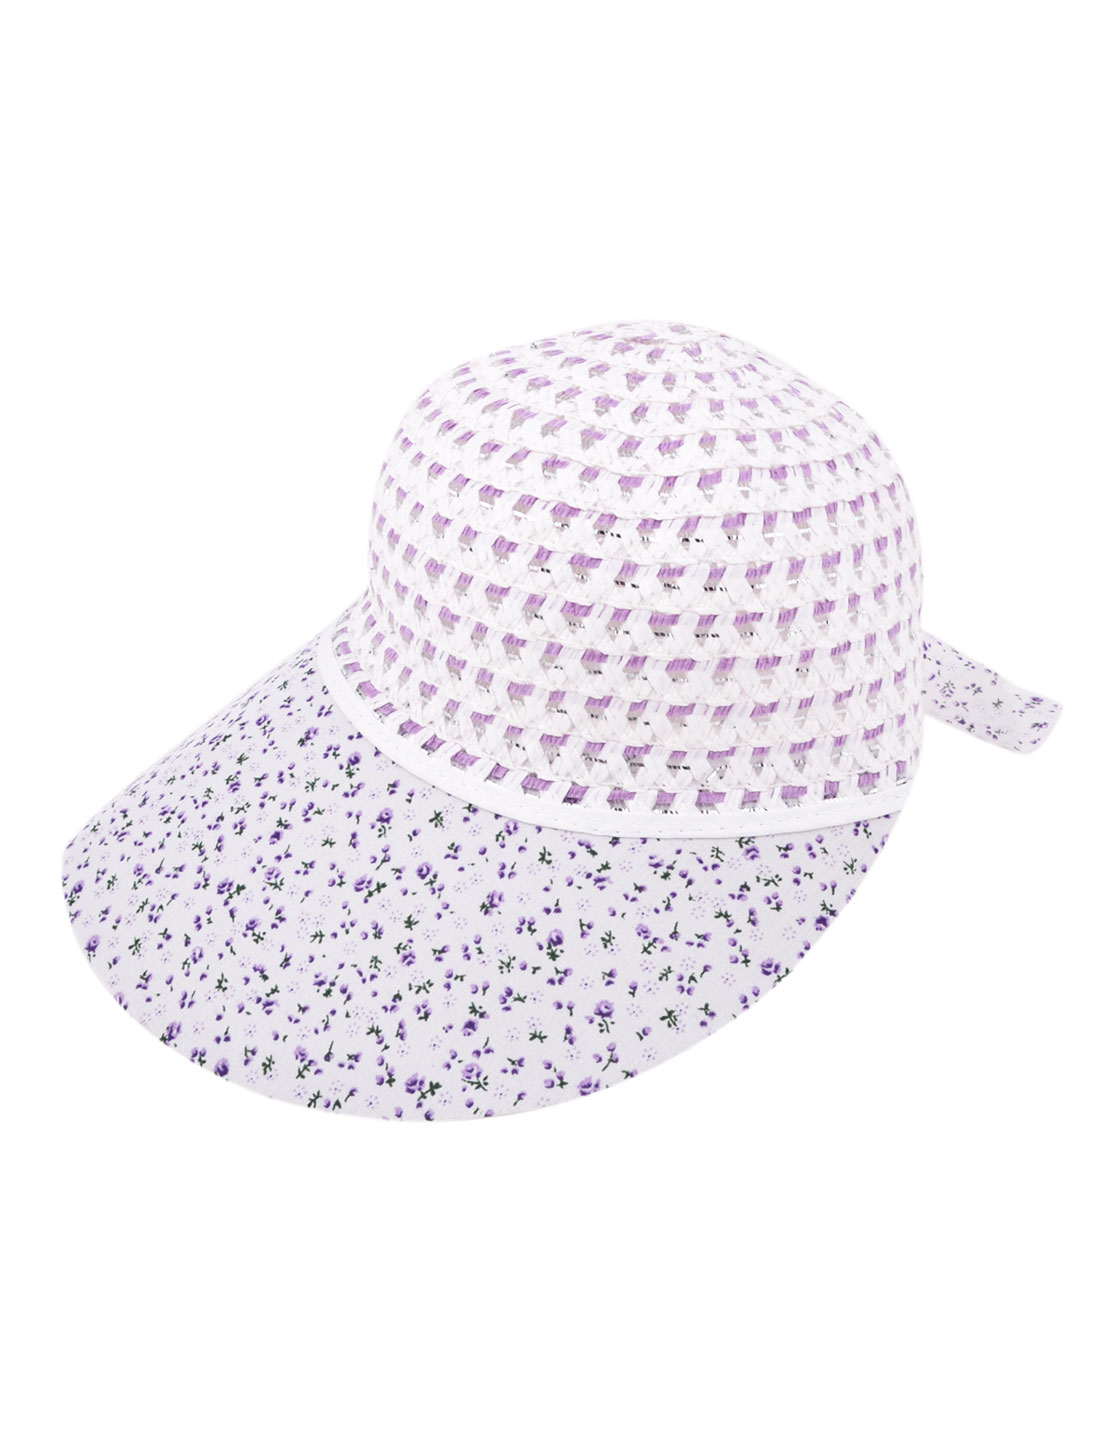 Woman Straw Braided Purple Flower Print Plastic Brim Nylon Beach Sun Visor Cap Hat White